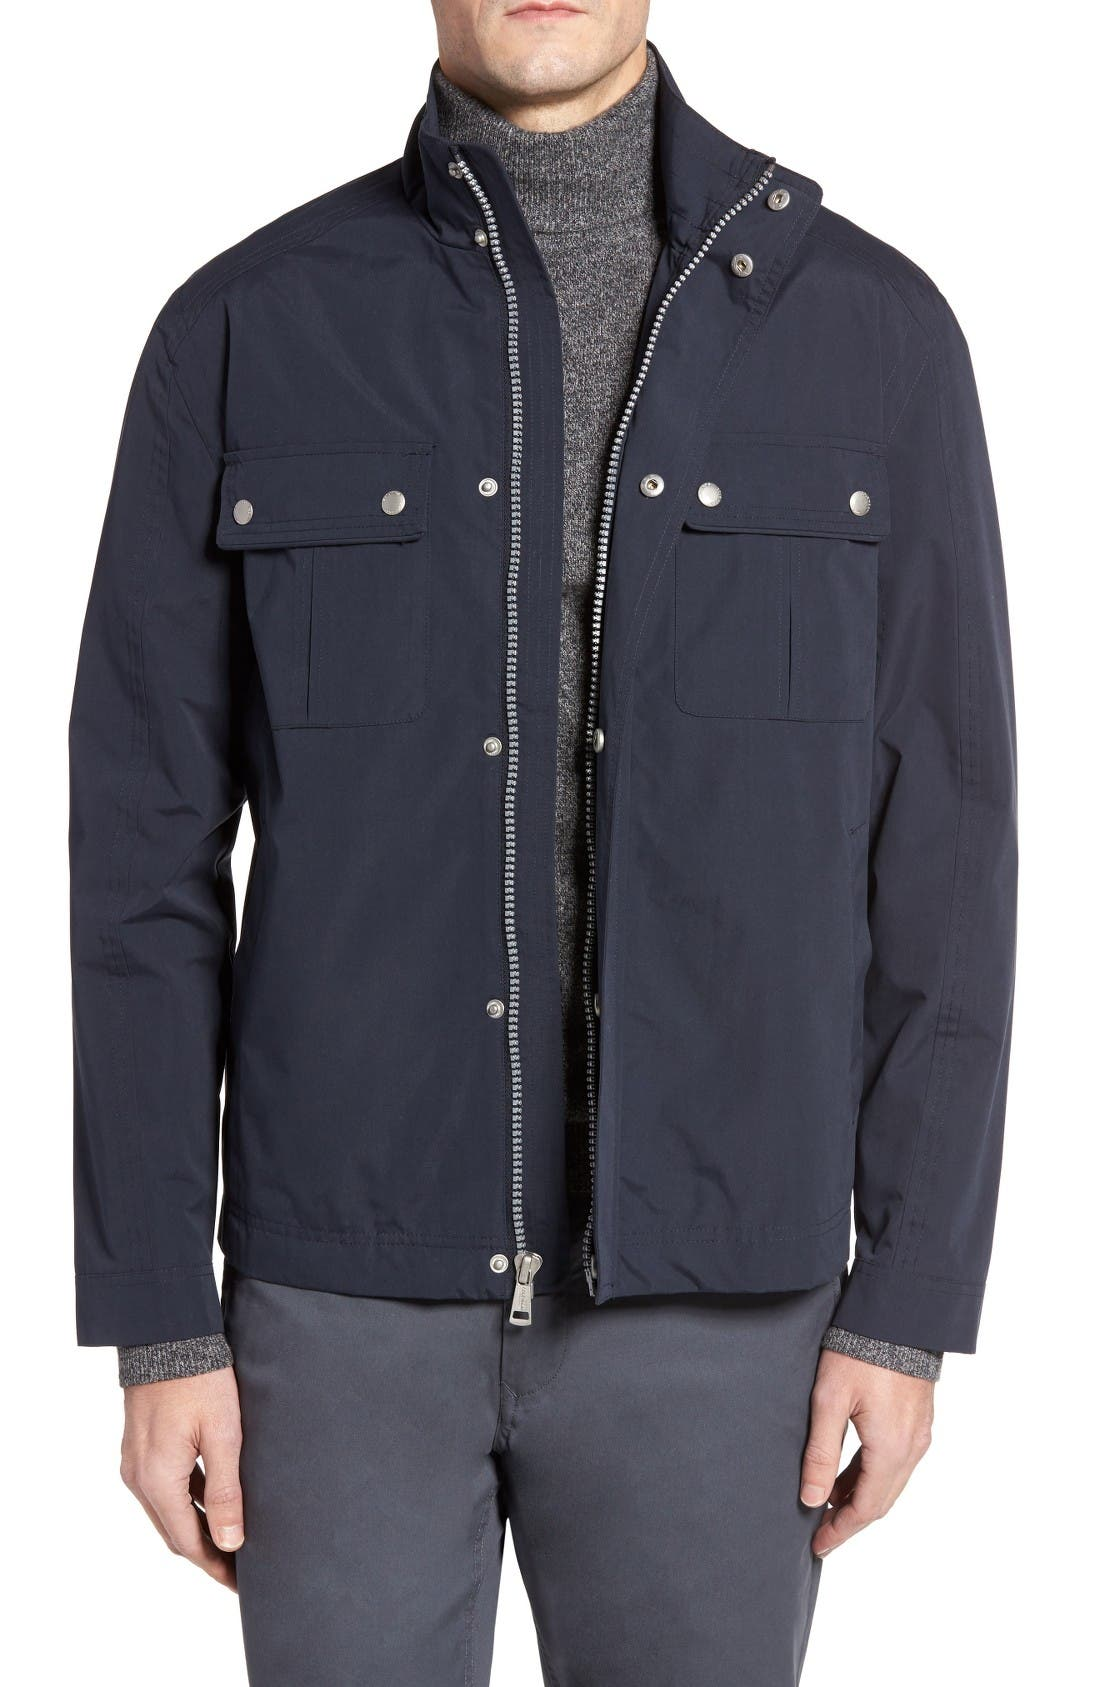 Stand Collar Water Repellent Jacket,                             Main thumbnail 1, color,                             Navy